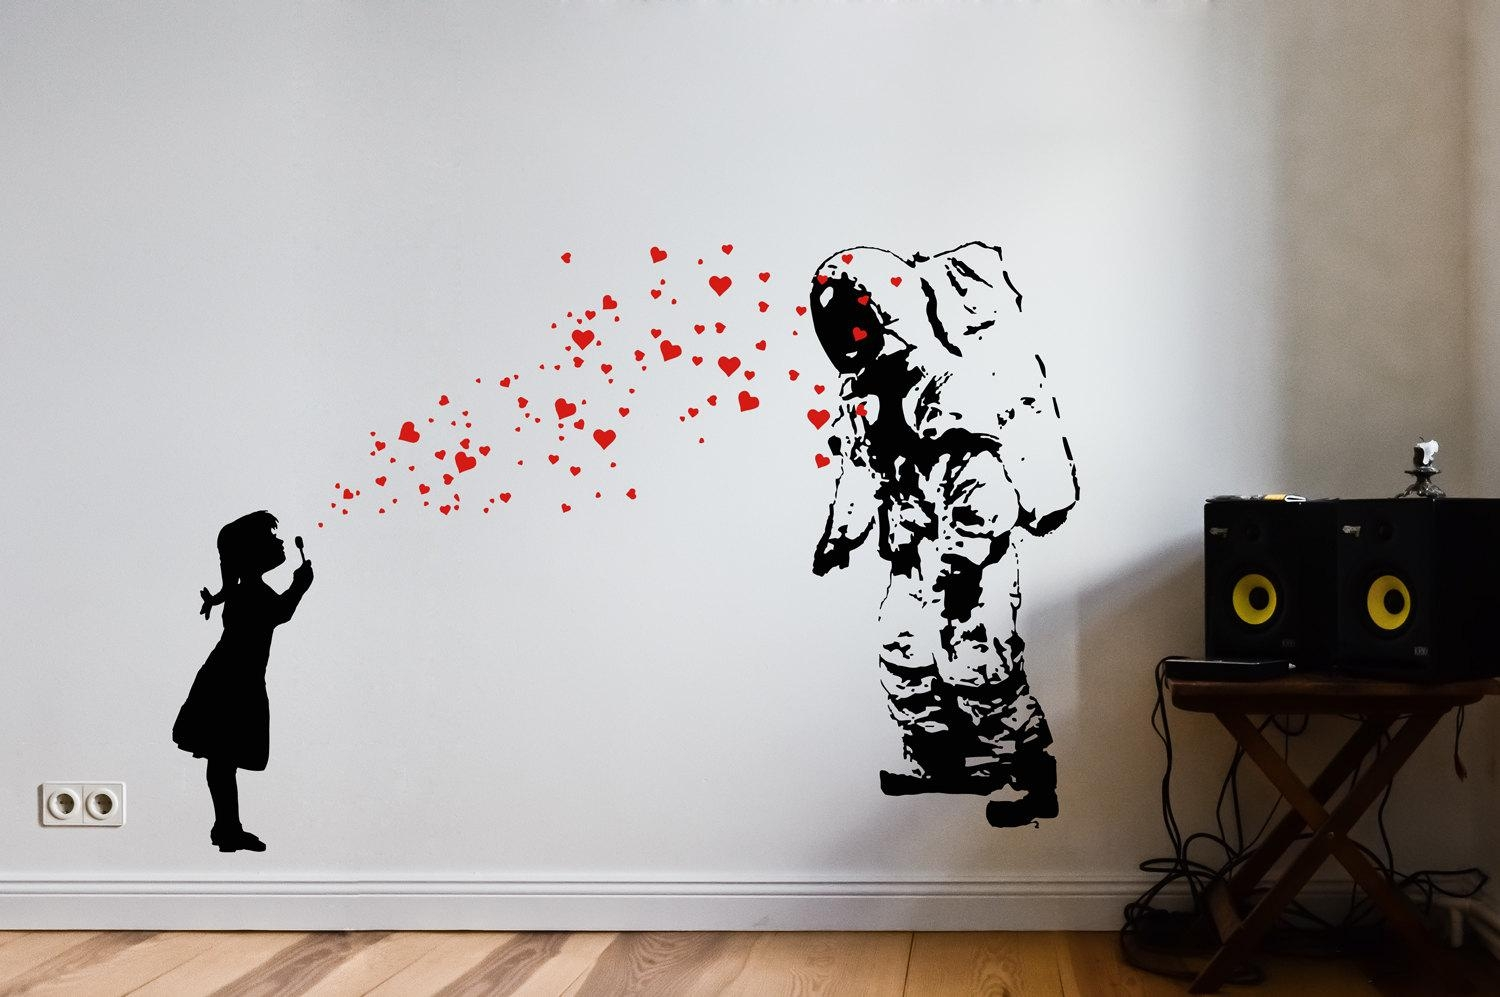 Astronaut Heart Bubble Love Wall Art Decal Street Art Banksy For Street Wall Art Decals (View 2 of 20)